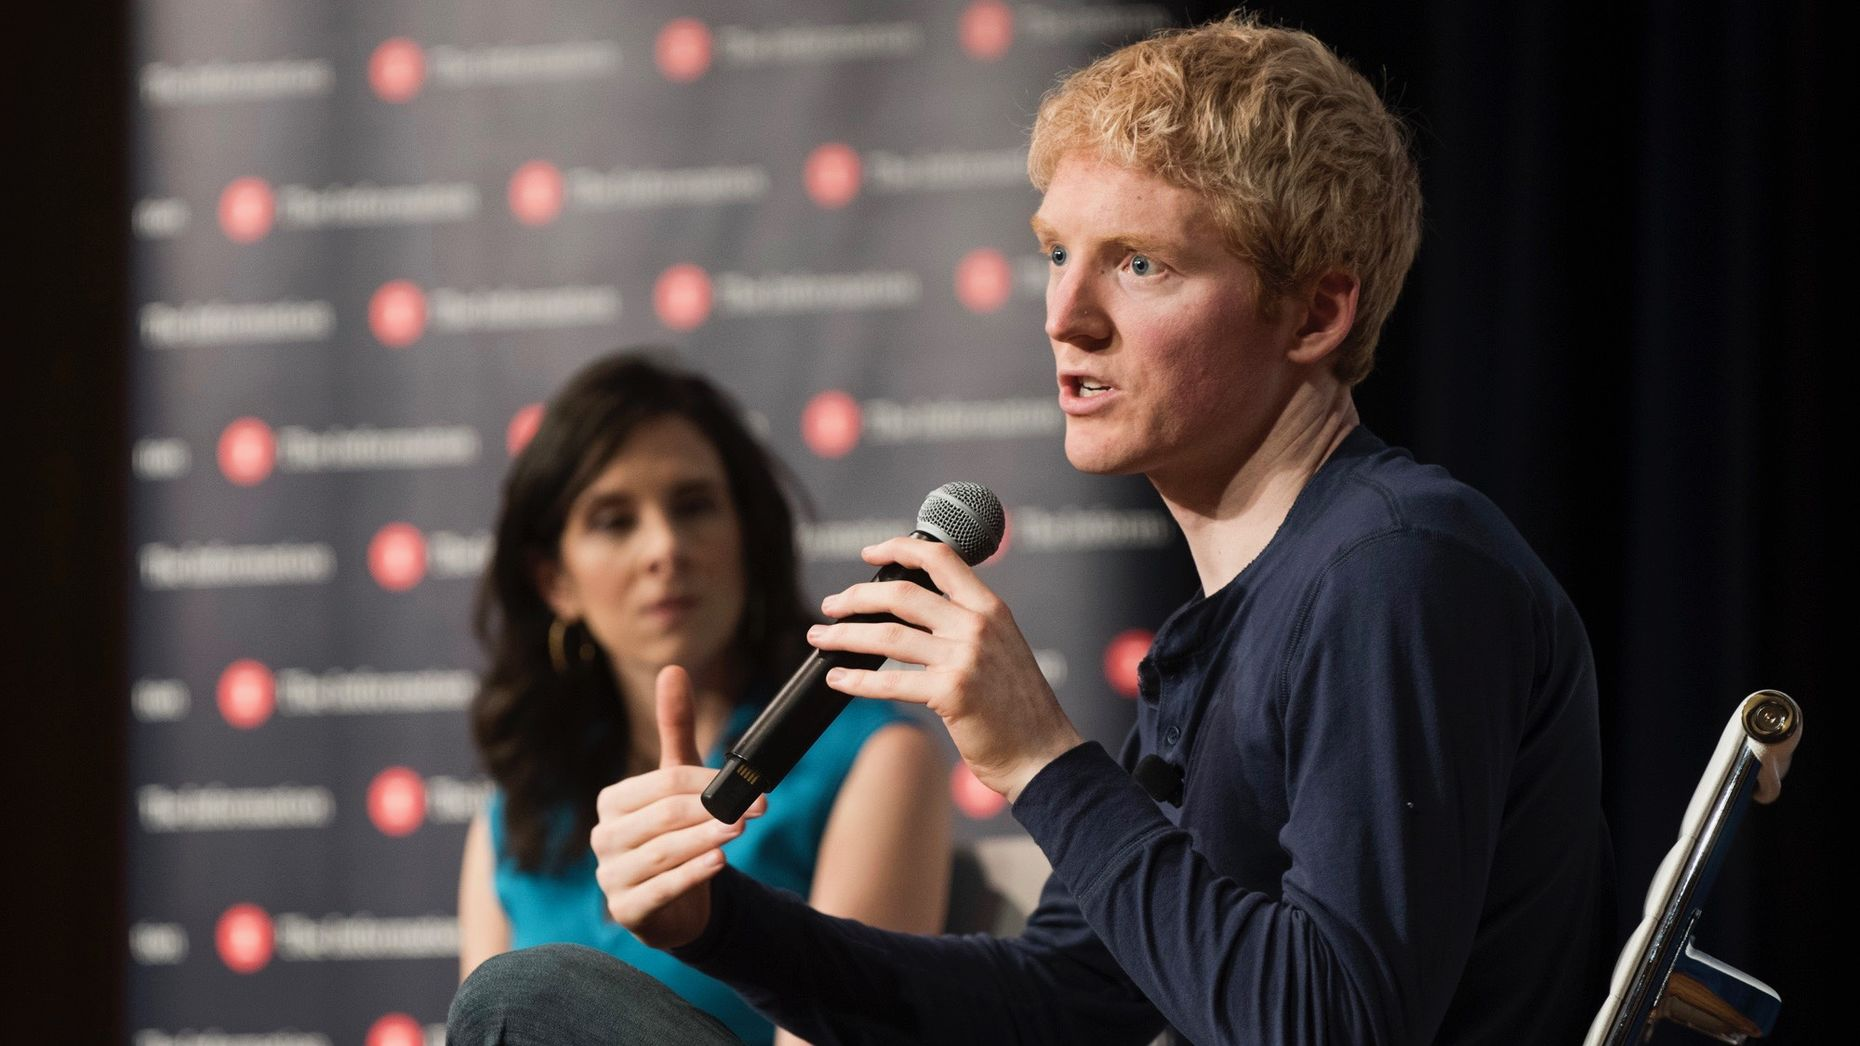 Stripe CEO Patrick Collison talking with The Information's Jessica Lessin on Friday. Photo by Erin Beach.